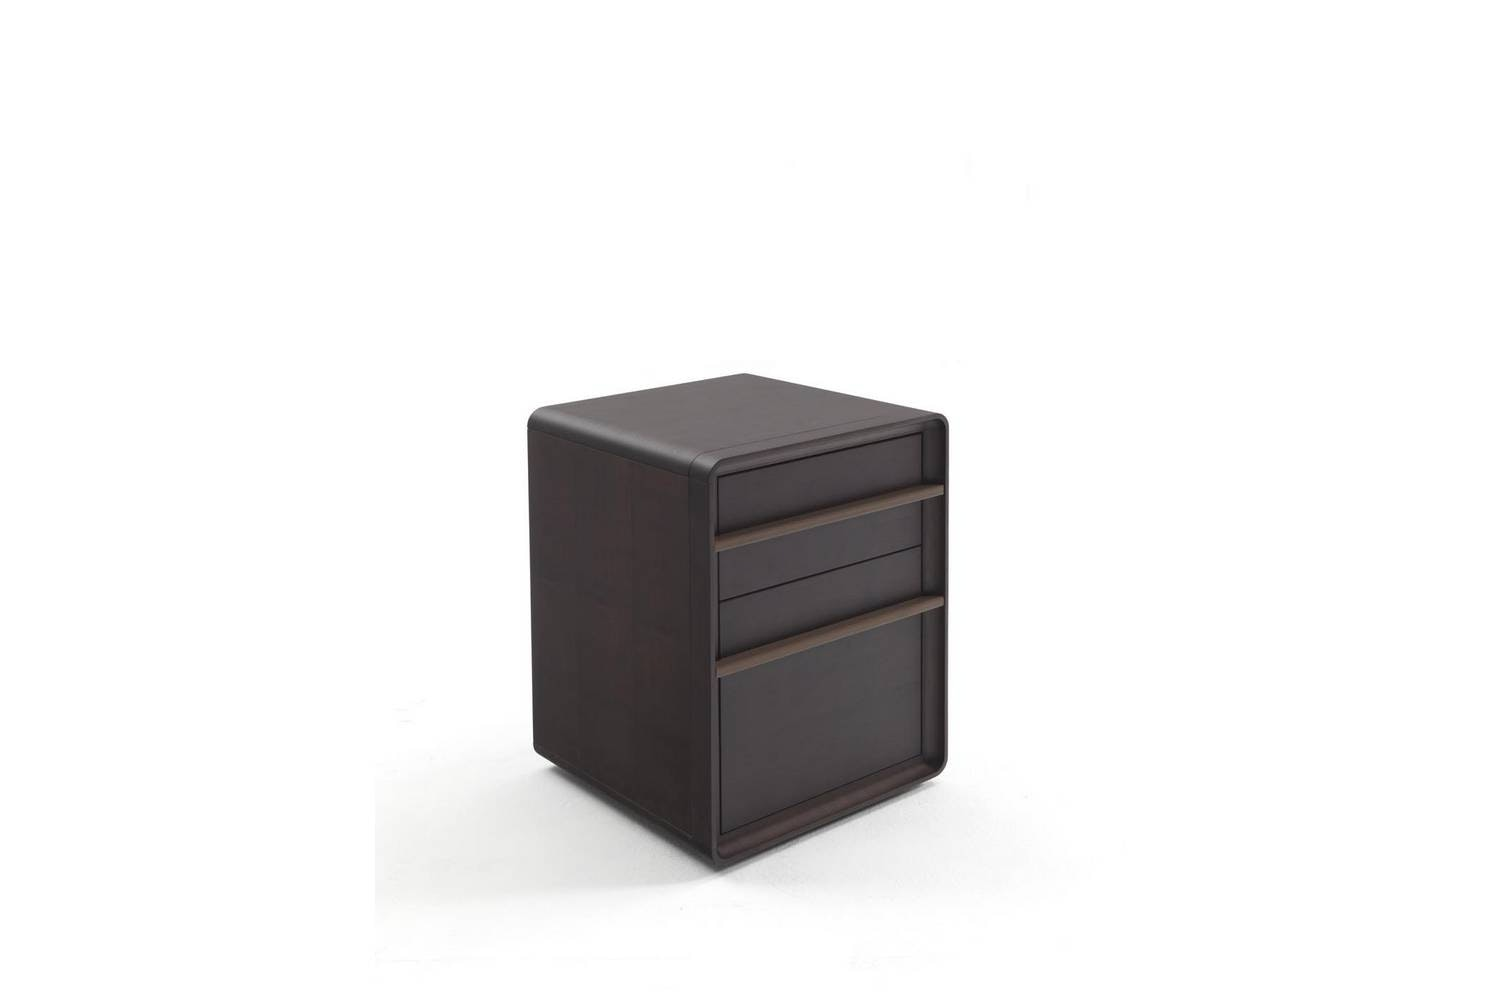 Aura Bedside Table by Marelli & Molteni for Porada